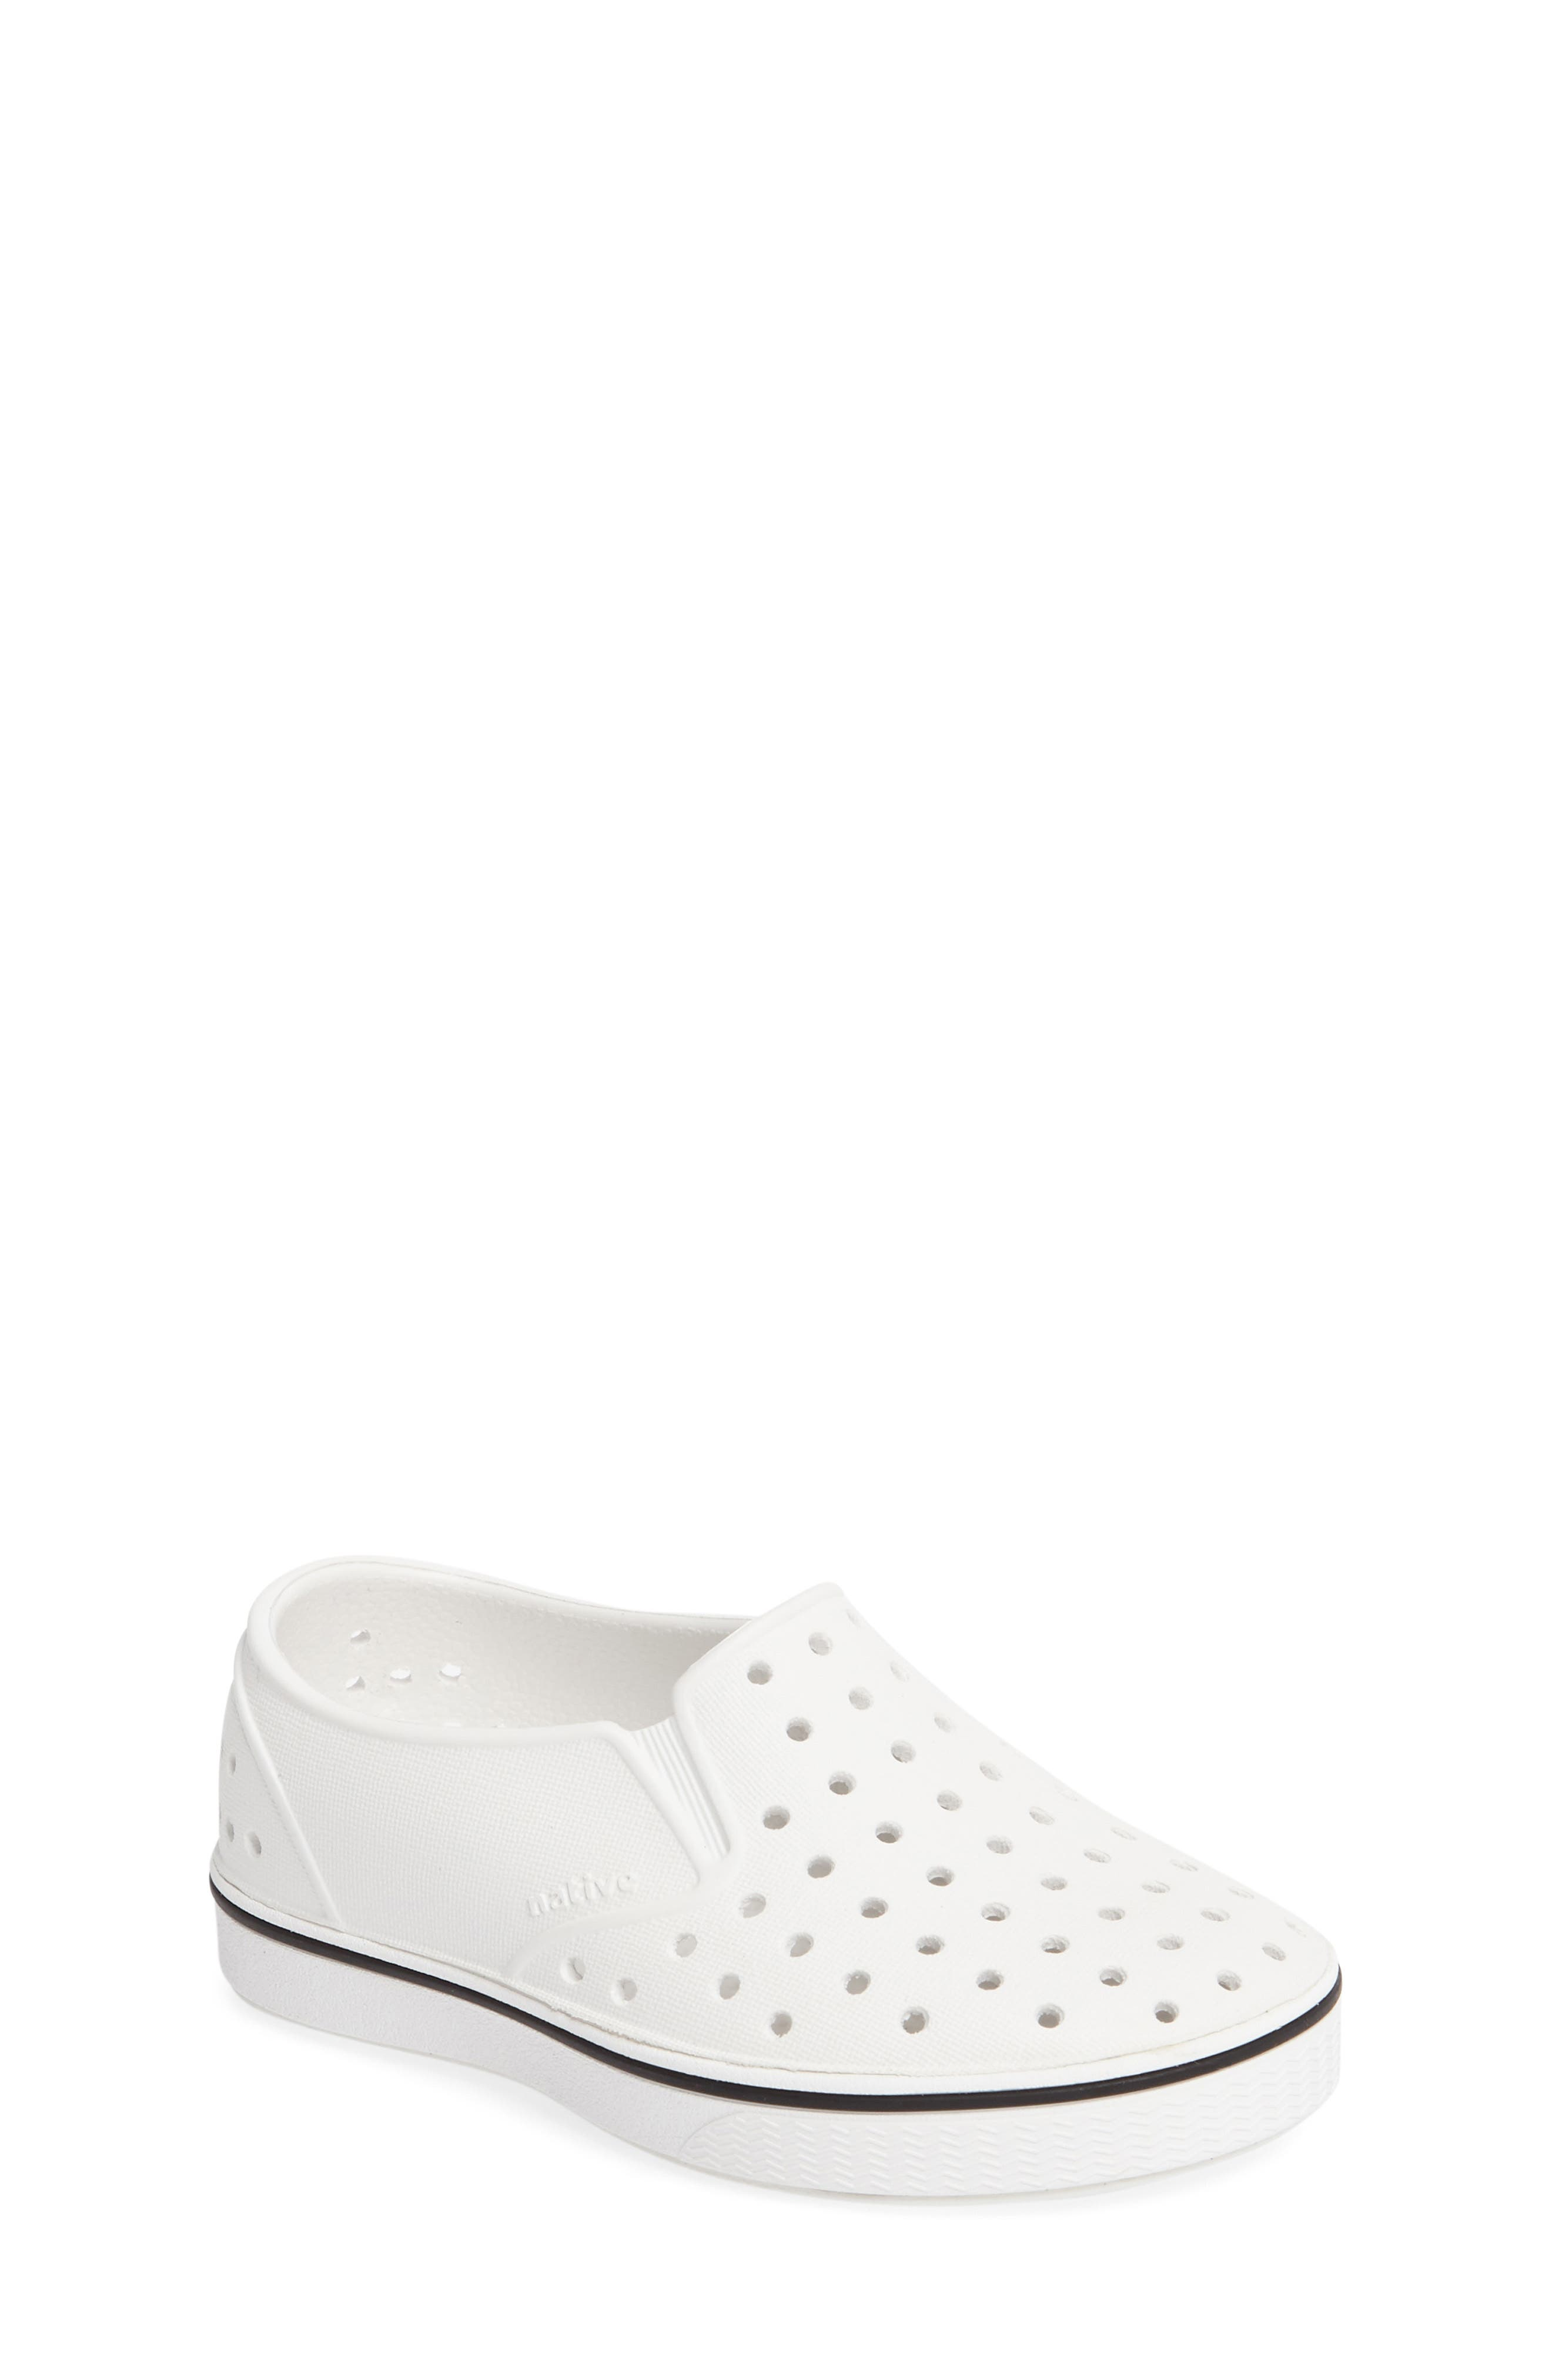 Native Shoes Miles Water Friendly Slip-On Sneaker (Baby, Walker, Toddler &.  Previous. SHELL WHITE/ ...